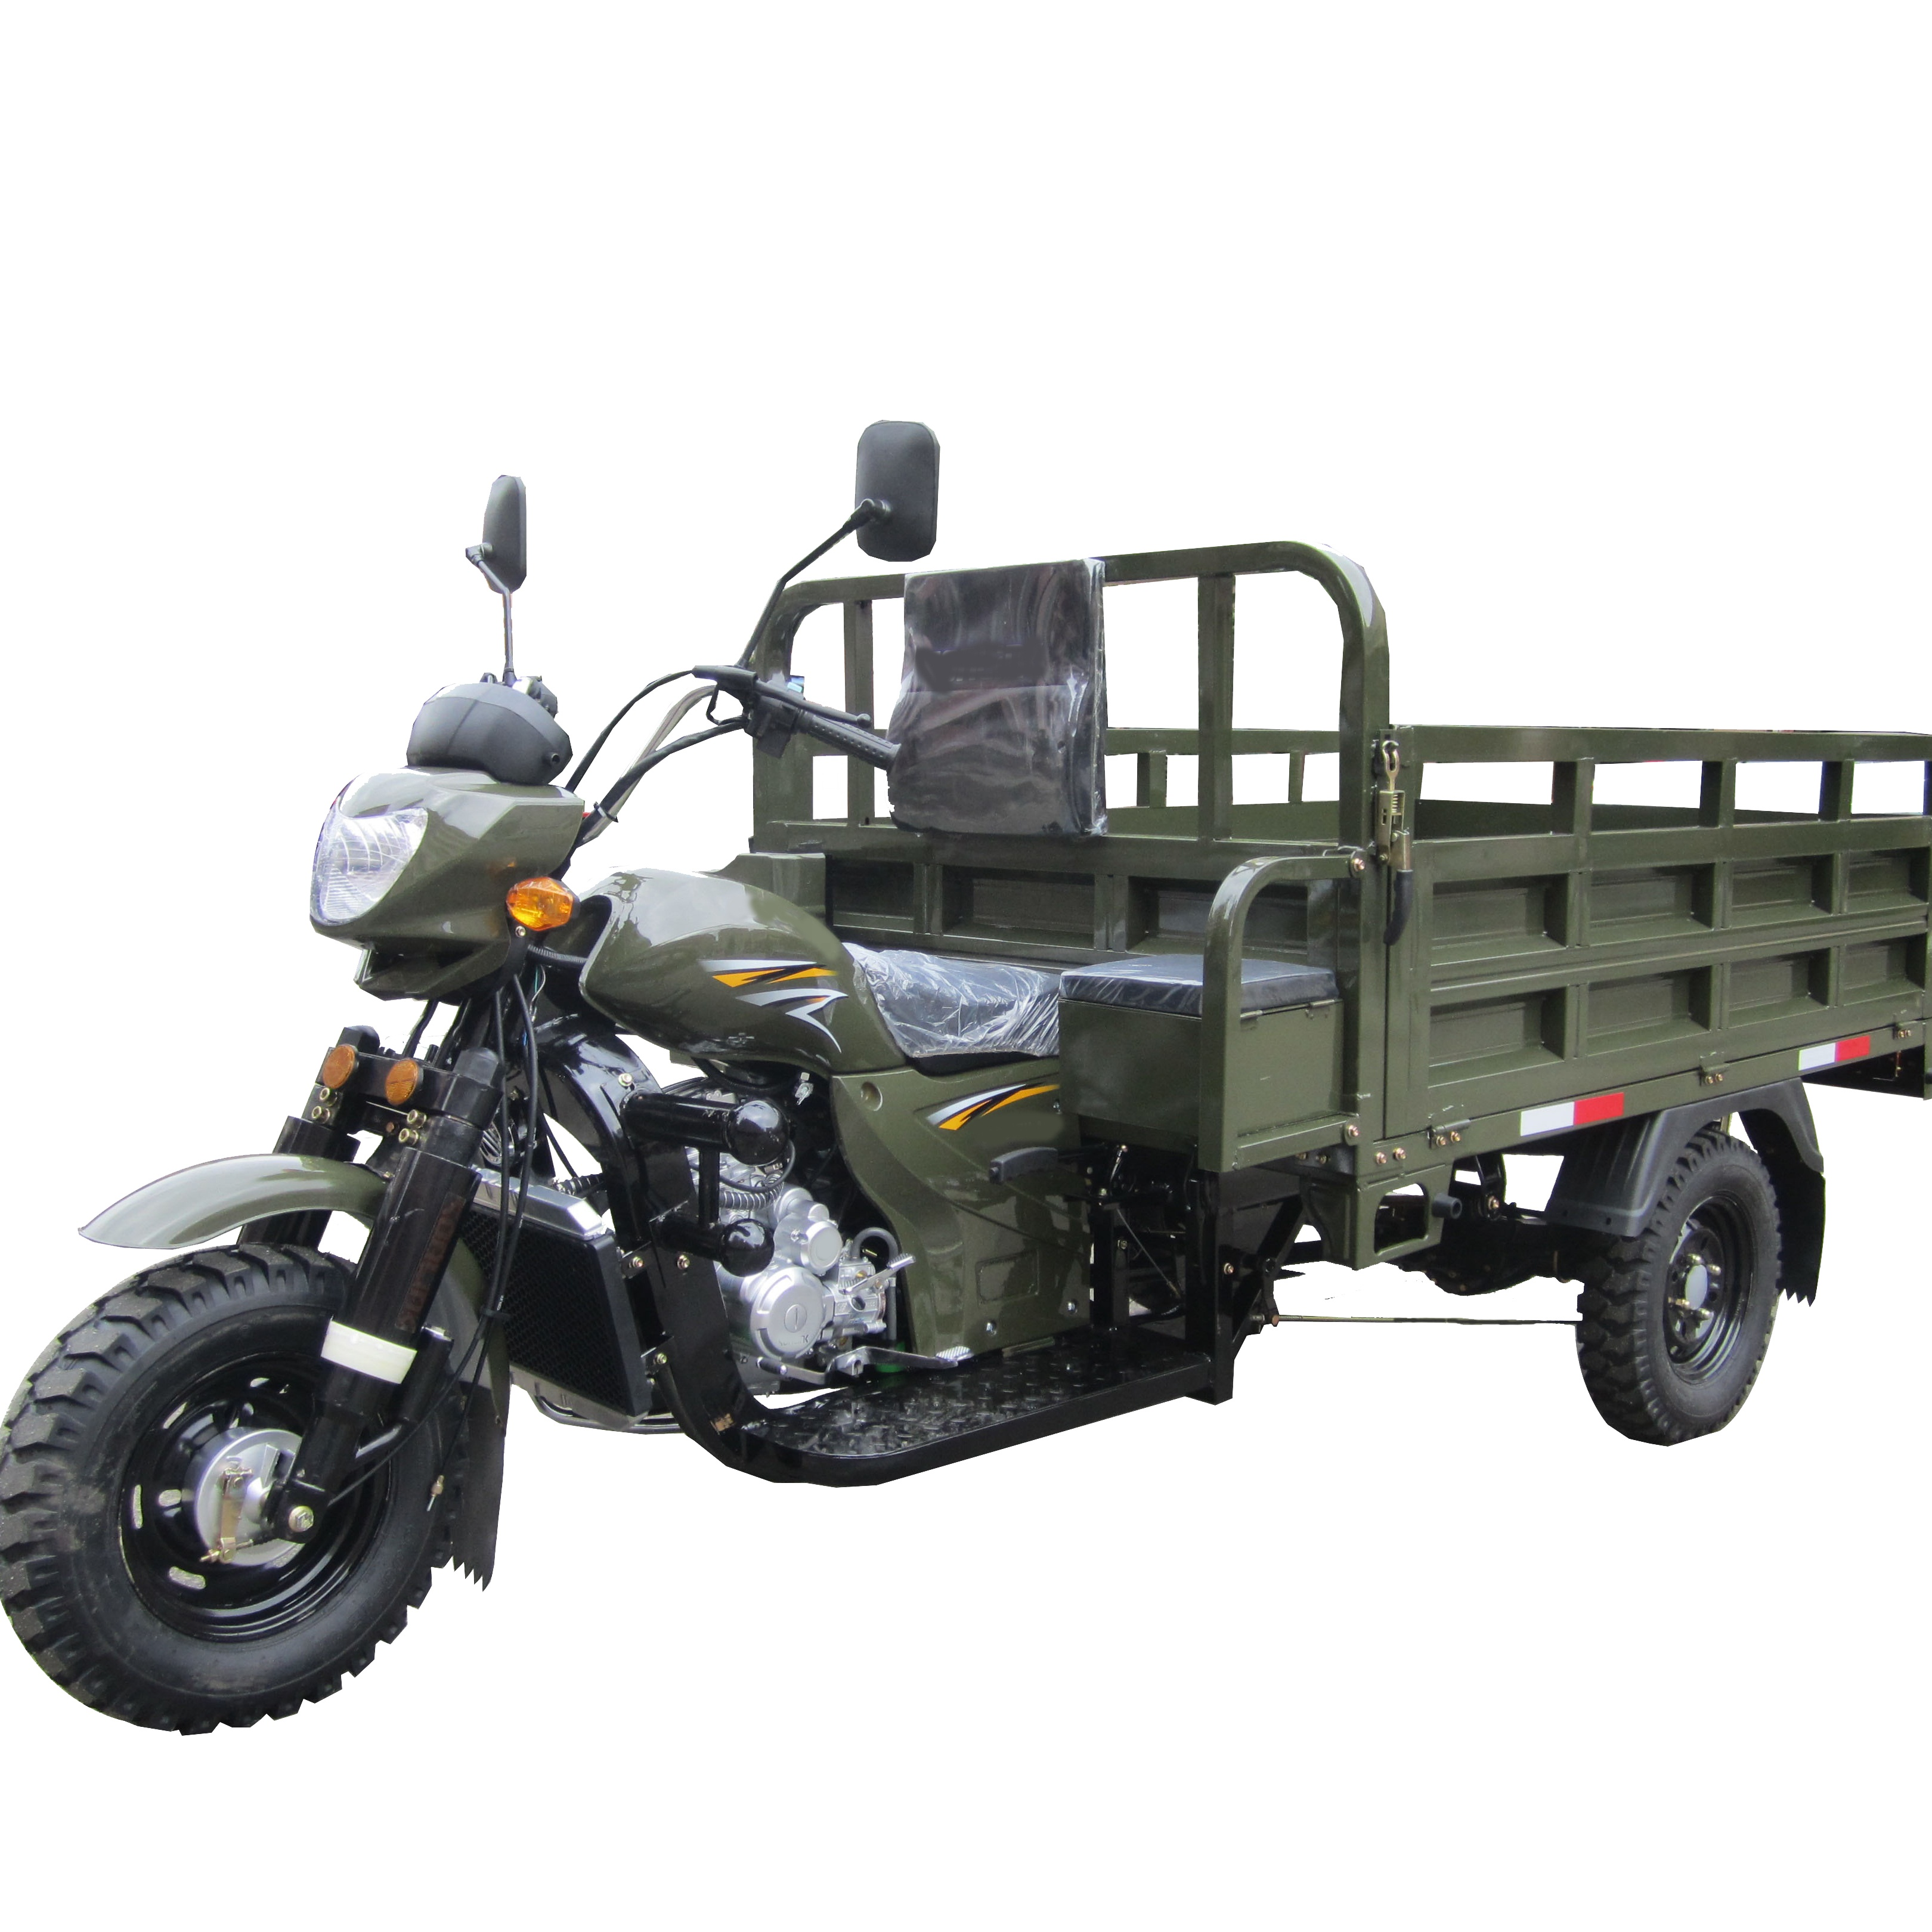 SP200-HH Euro I Drum Brake Tricycle / Cheap China Good Quality Three Wheel Cargo Motorcycle Dirt bike Moto